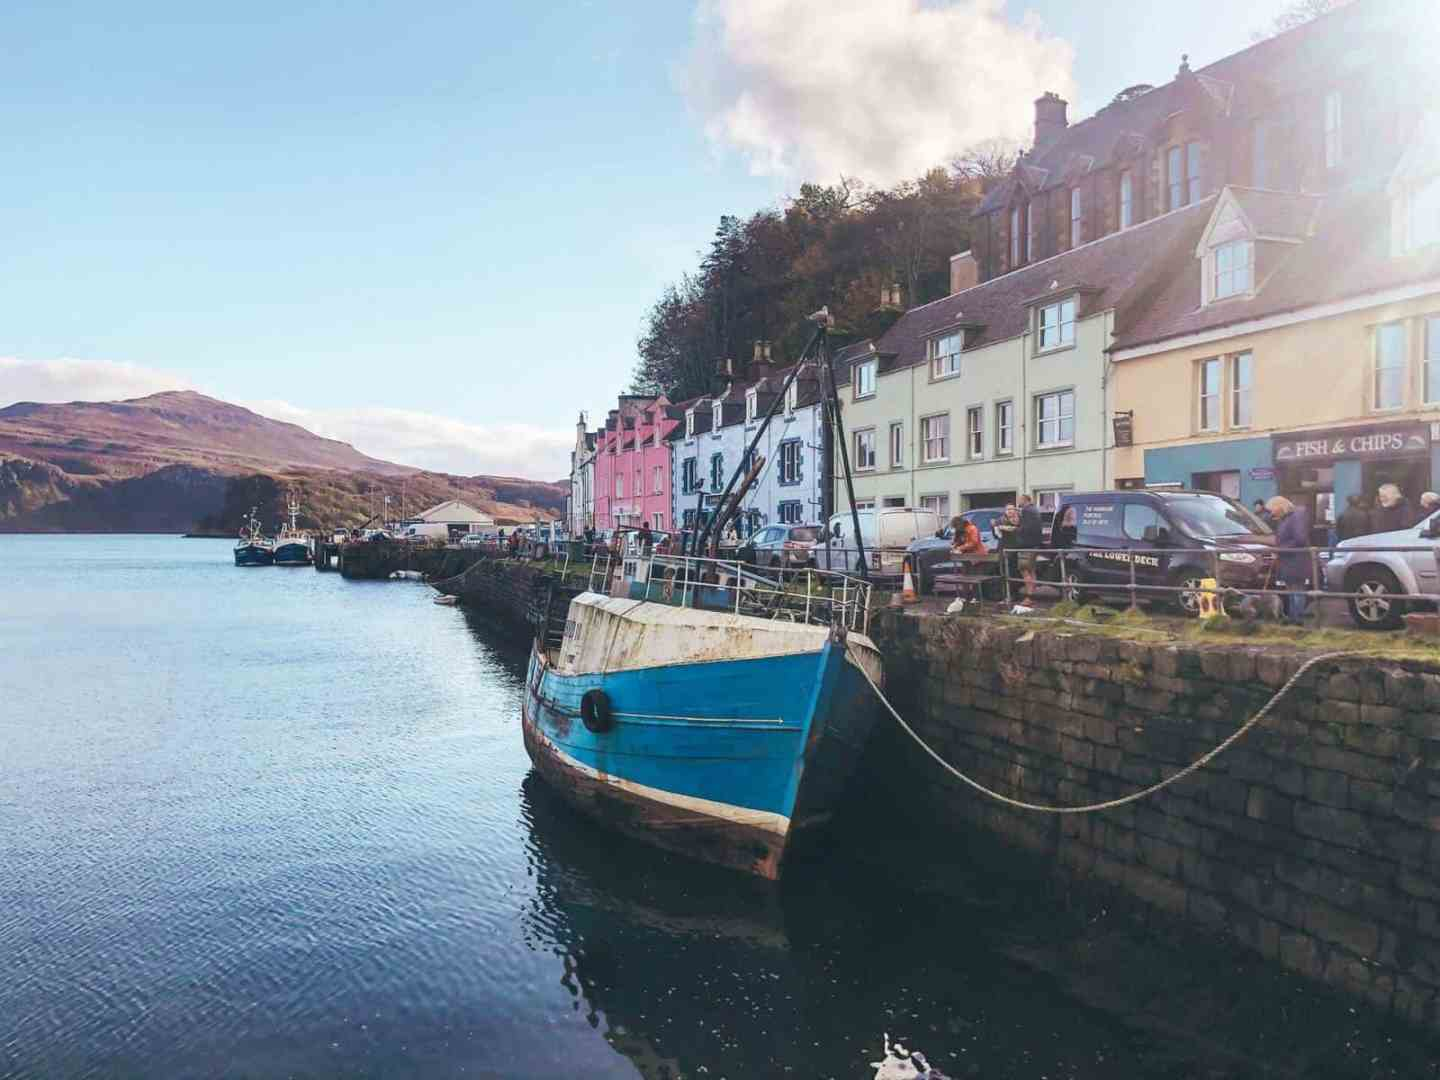 Colourful houses on the edge of a harbour with an old boat tired to the side and mountains in the background